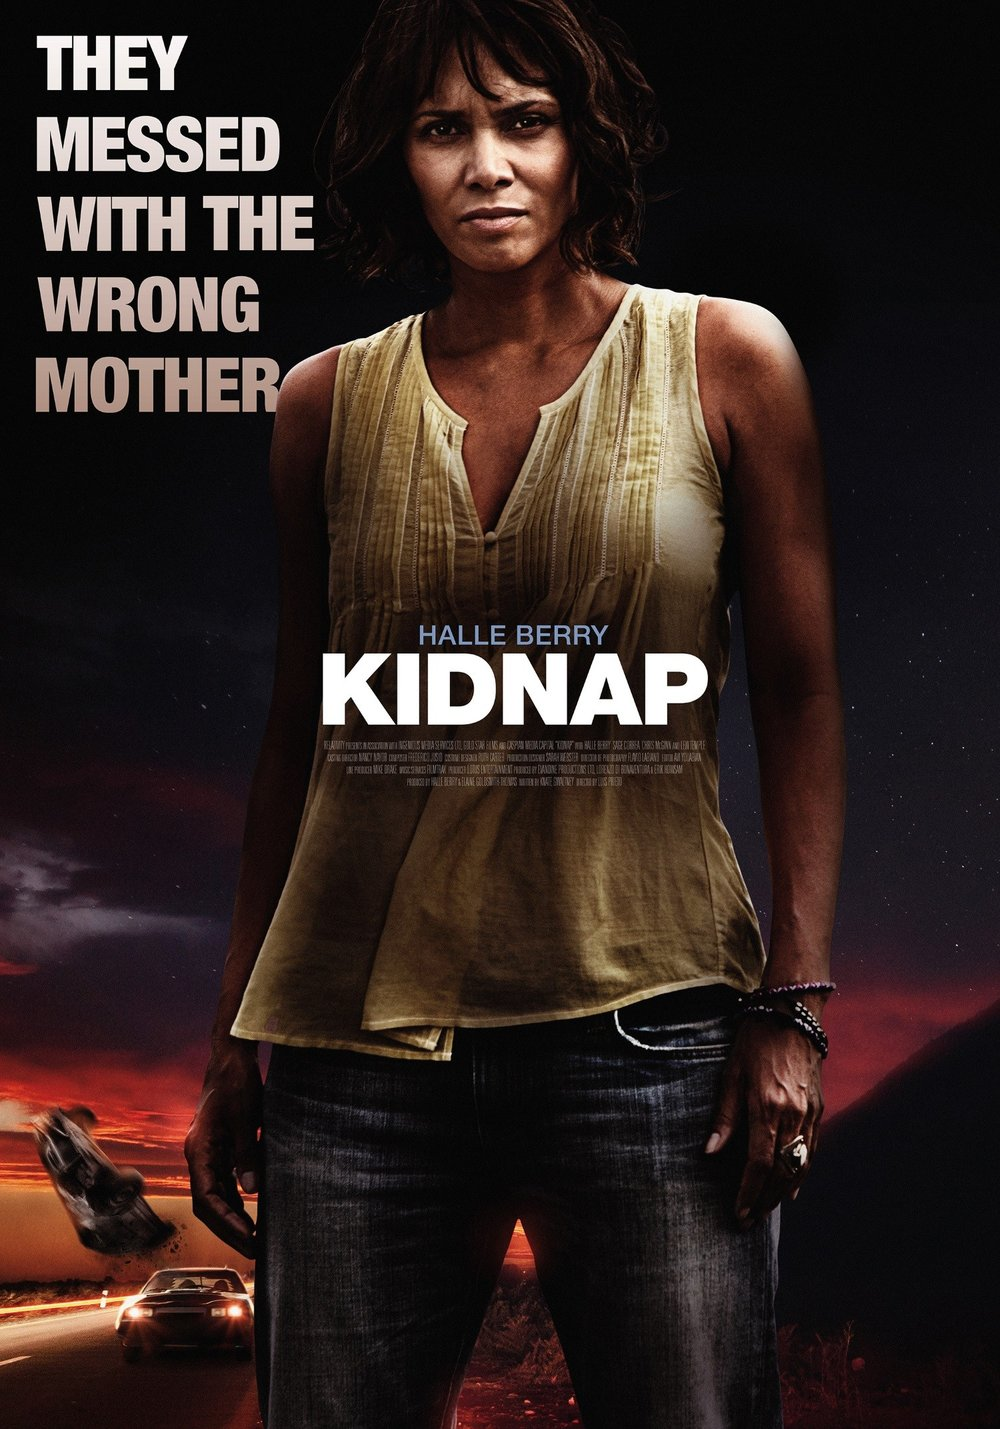 Kidnap-movie-new-poster.jpg